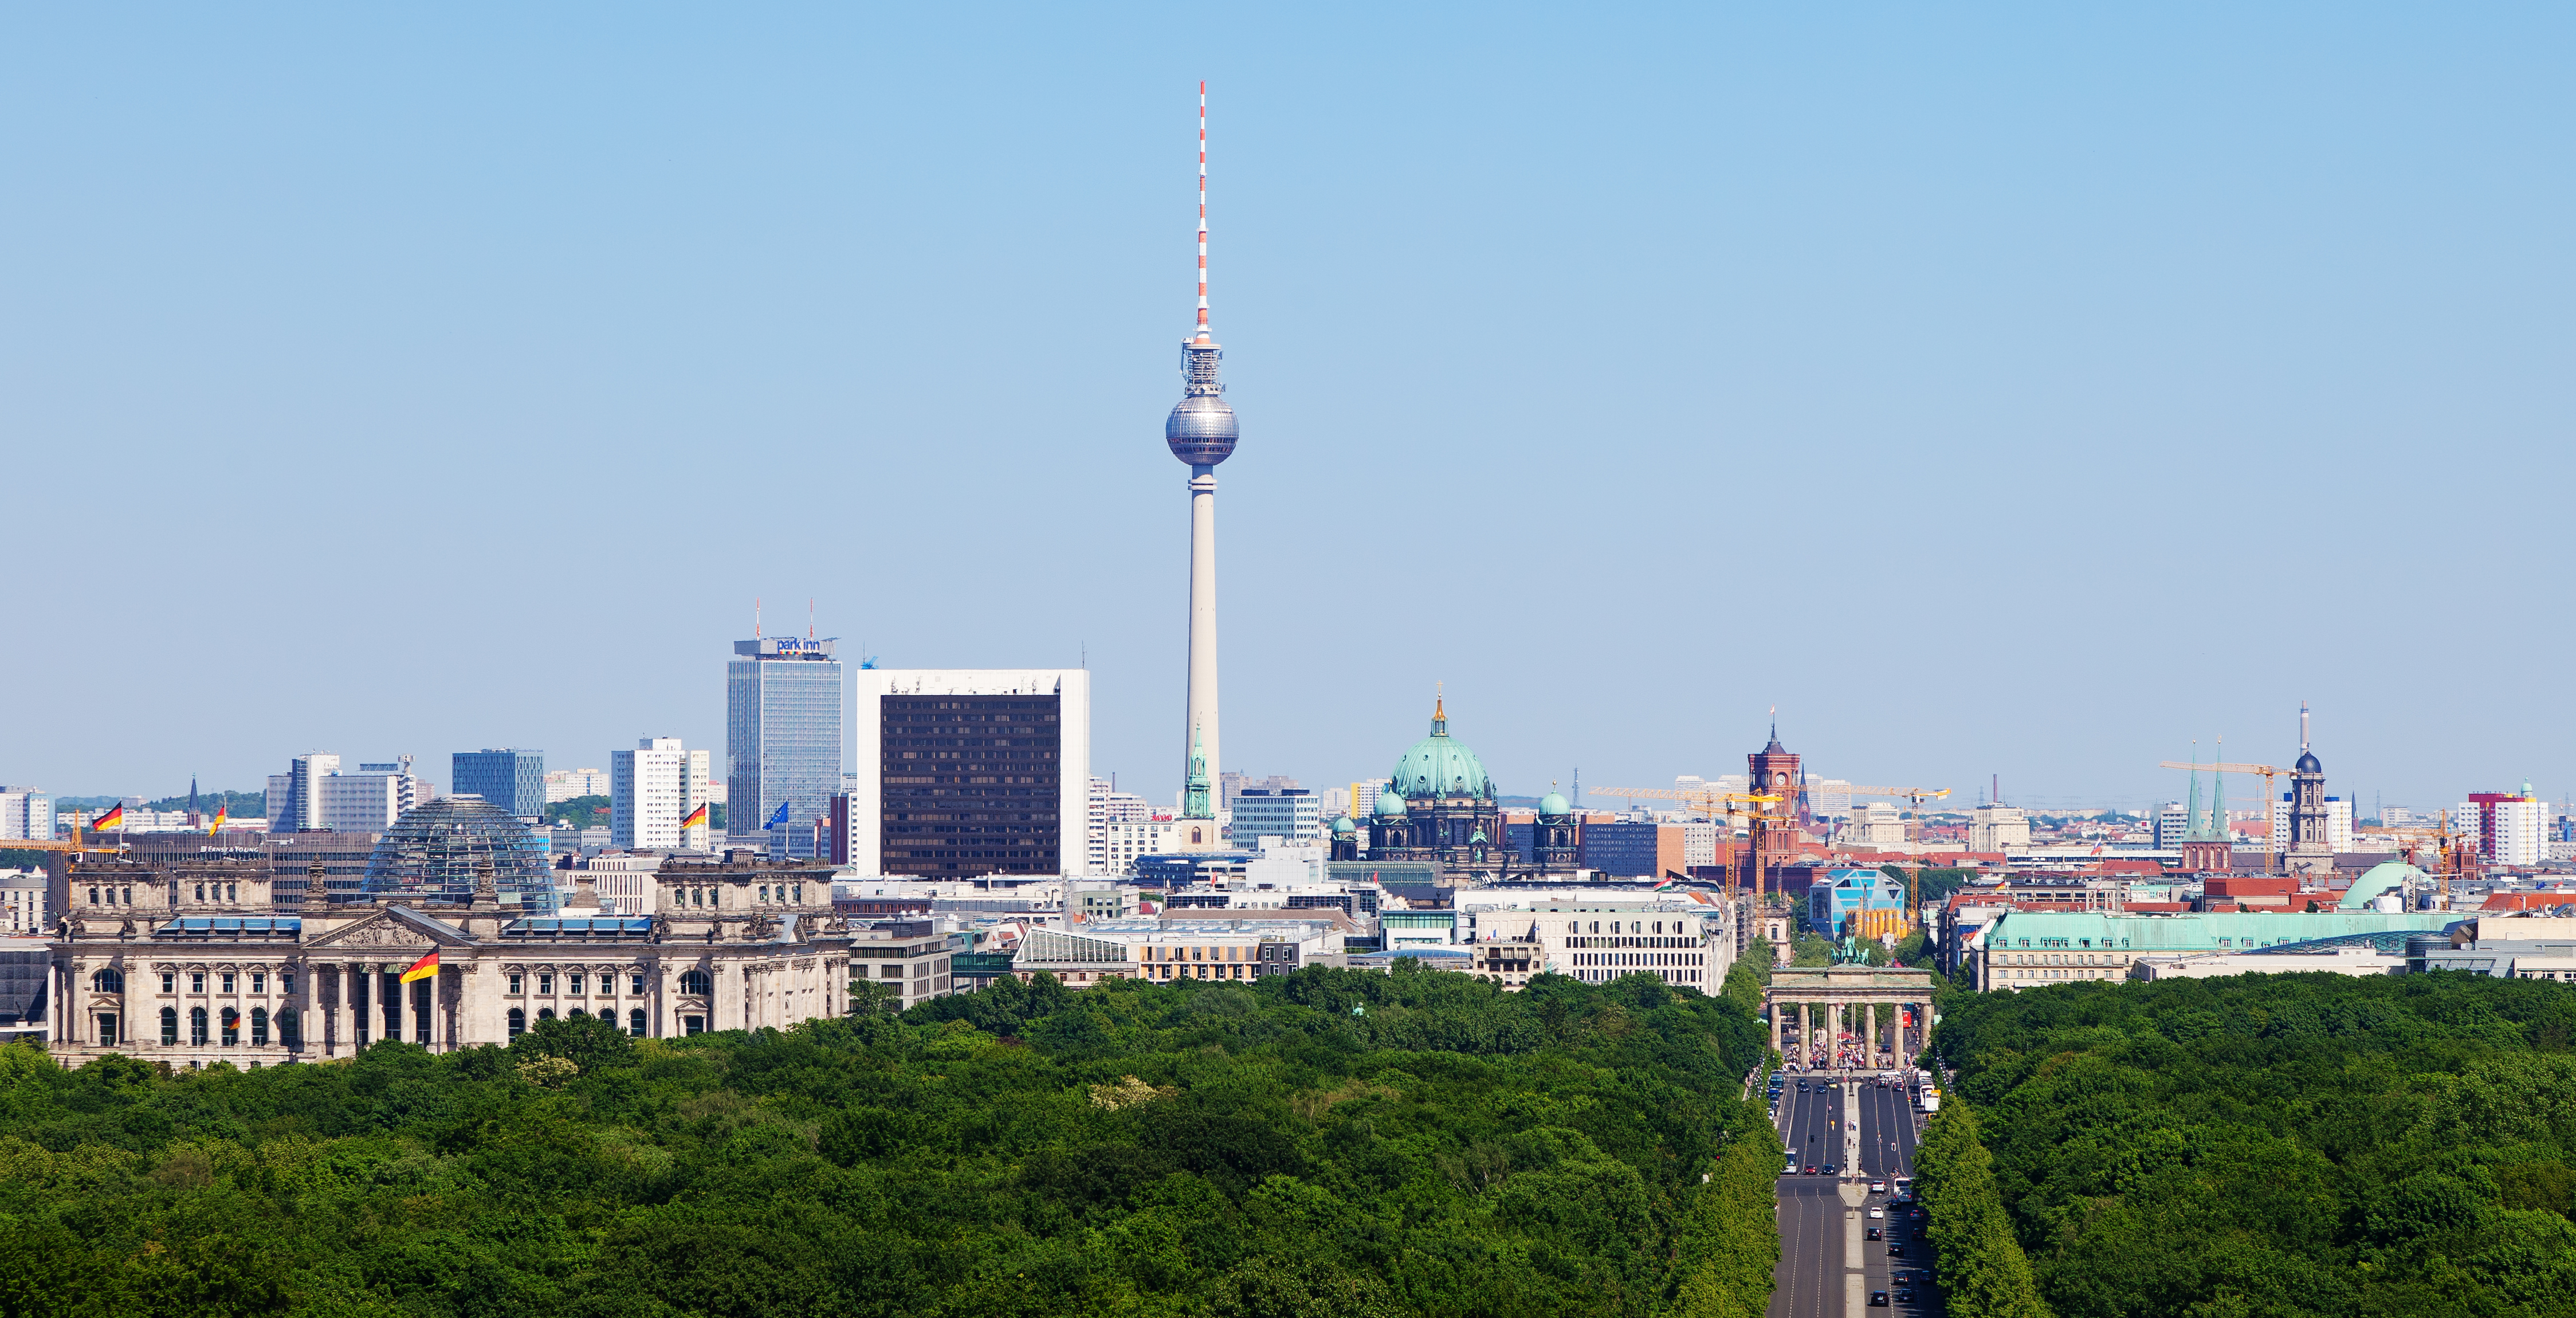 Berlin   Wikipedia Berlin Mitte landmarks from left to right  seen from Victory Column    Reichstag building  Fernsehturm  Cathedral  City Hall  Brandenburg Gate